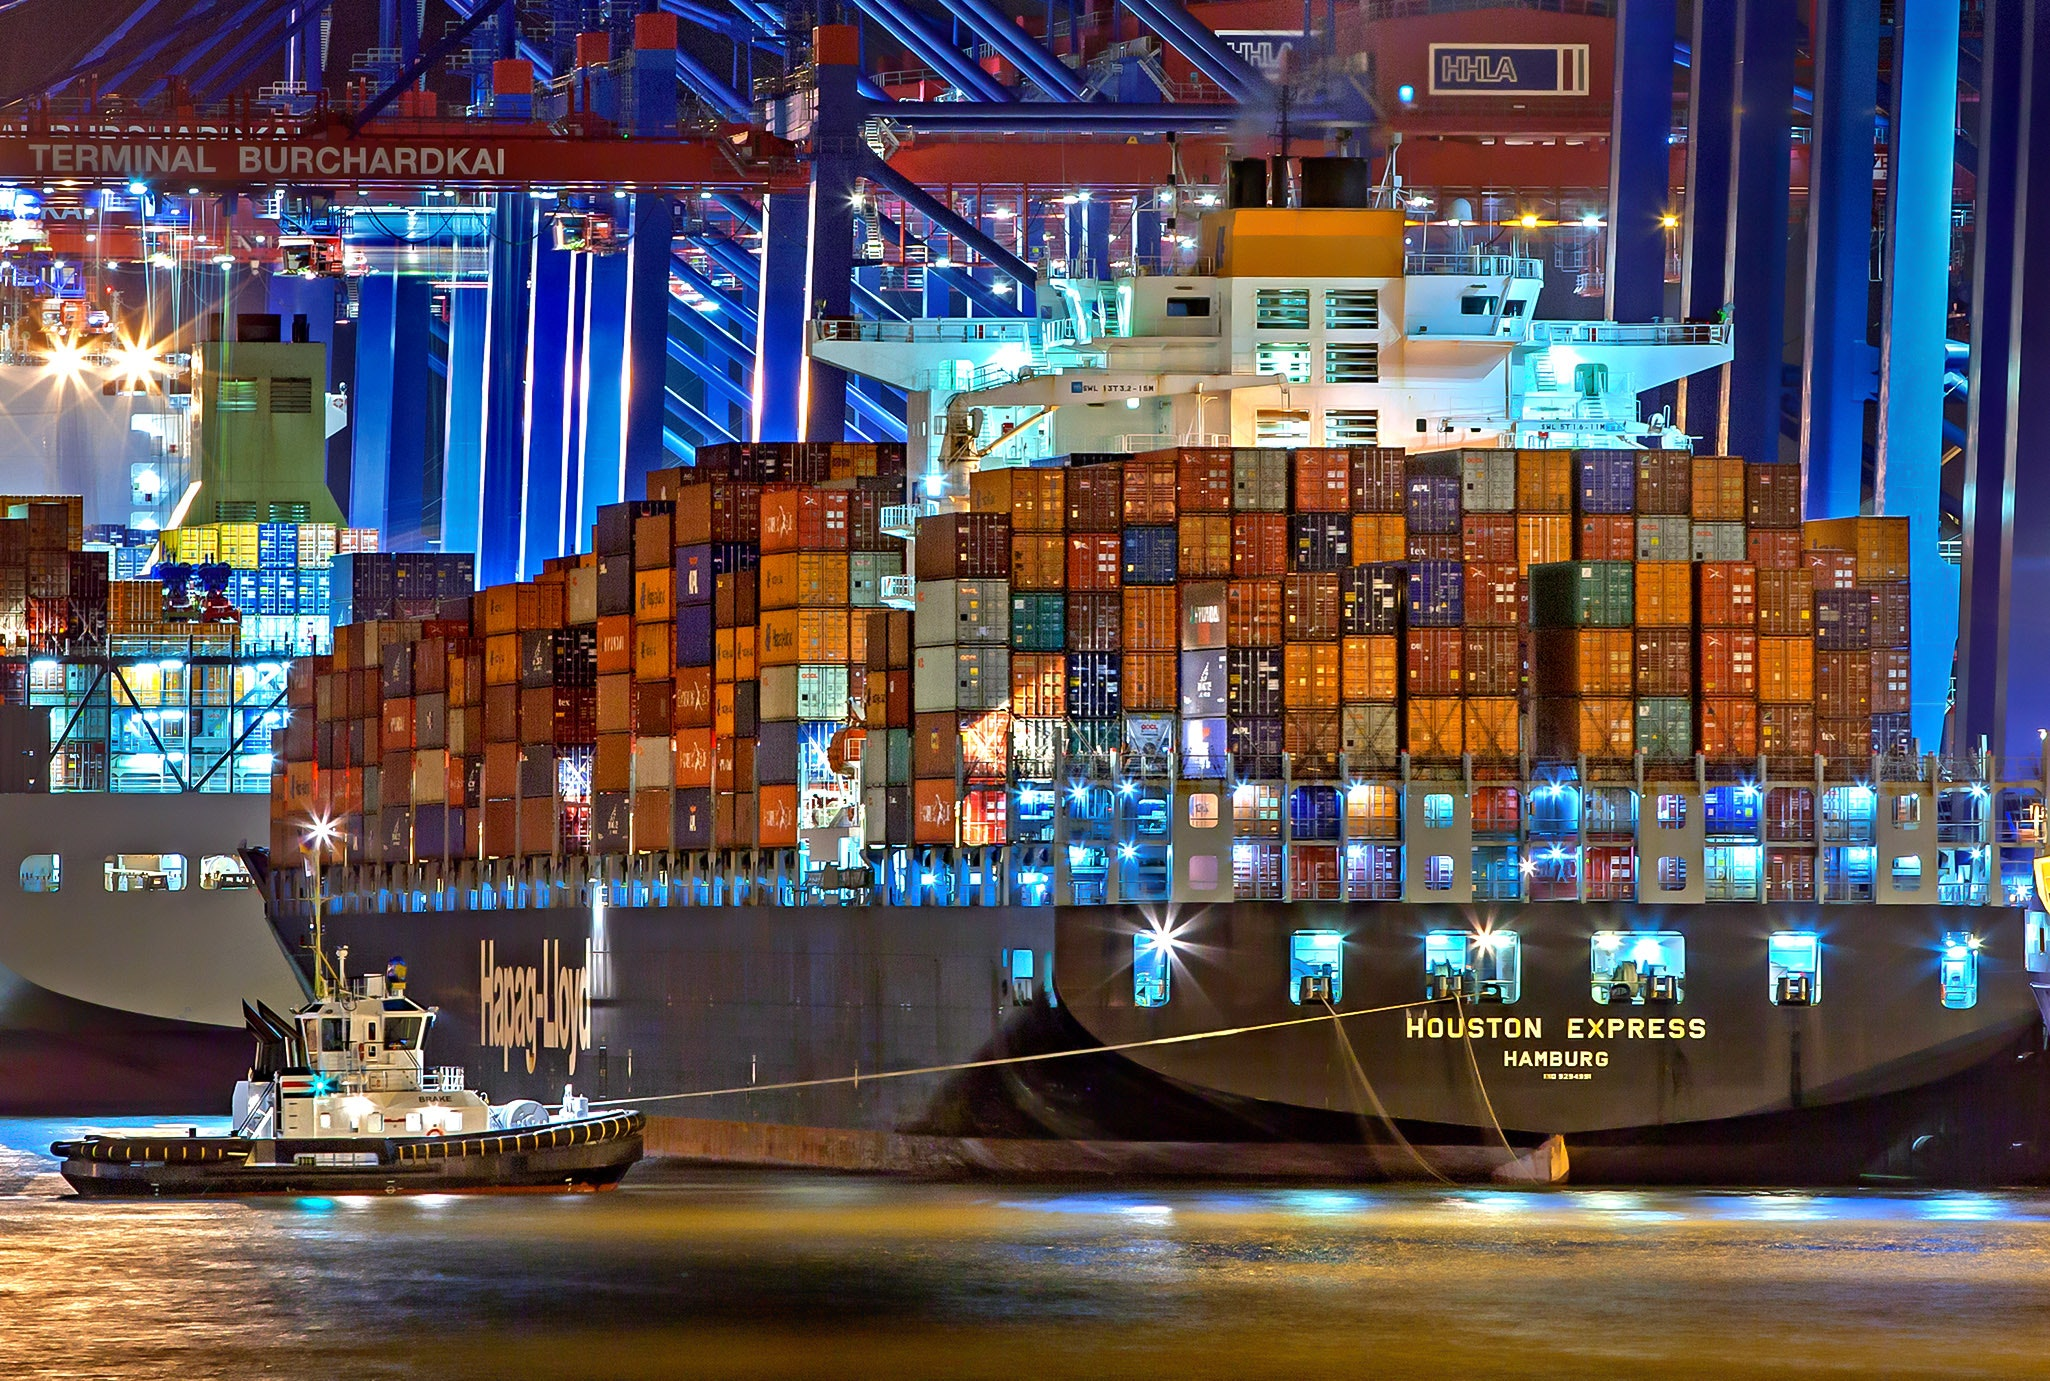 How Do I Get My Manufacturing or Distribution Business Involved in Exporting?